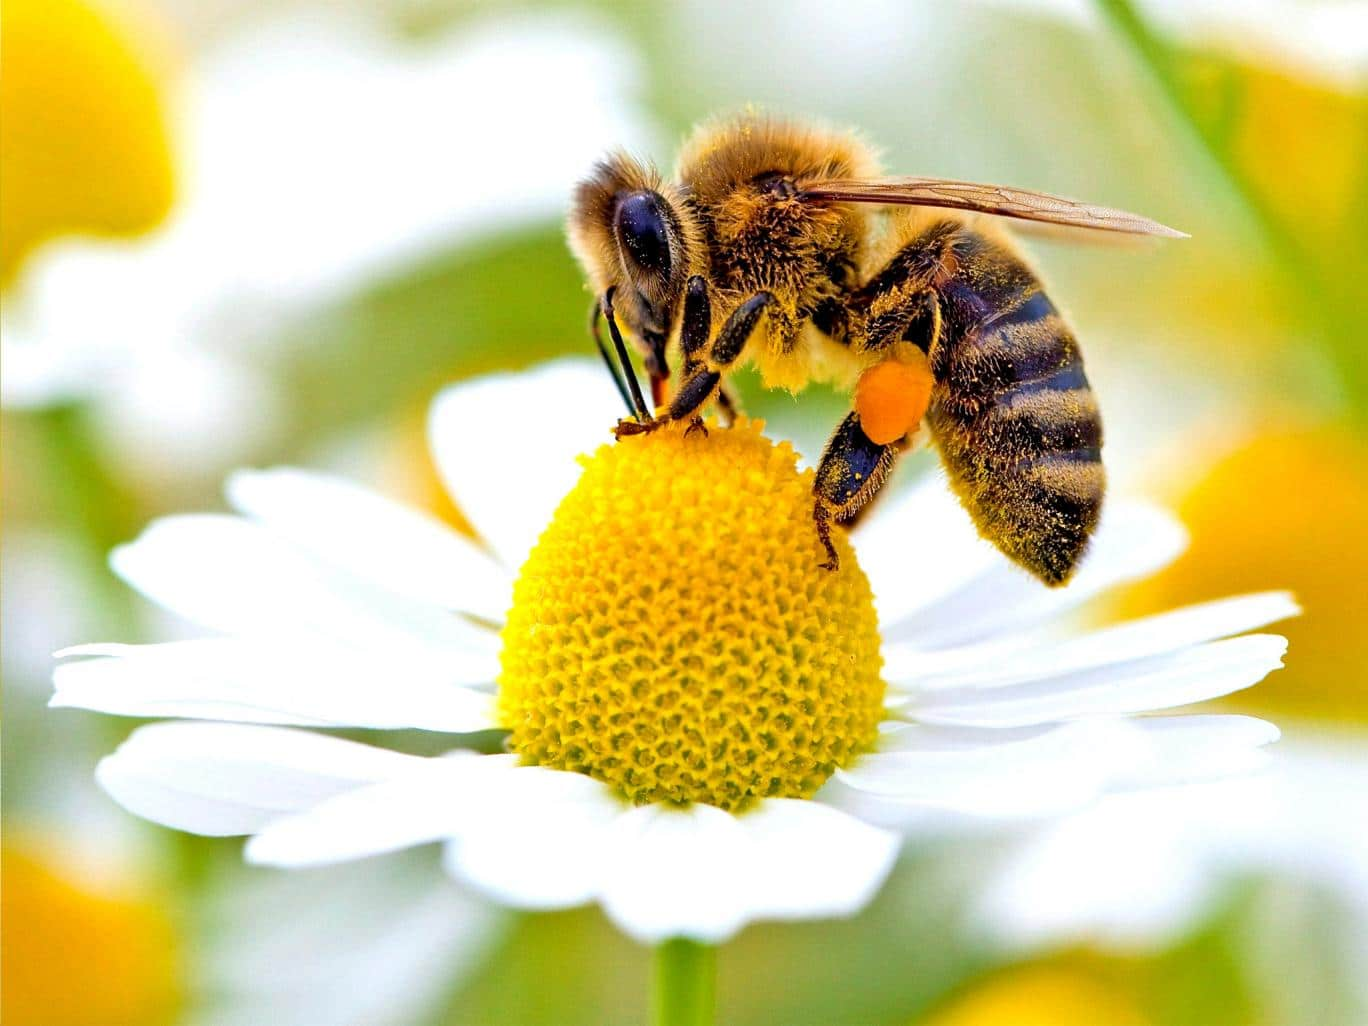 Wild-Bees-Are-In-Low-Numbers-In-Crucial-Areas